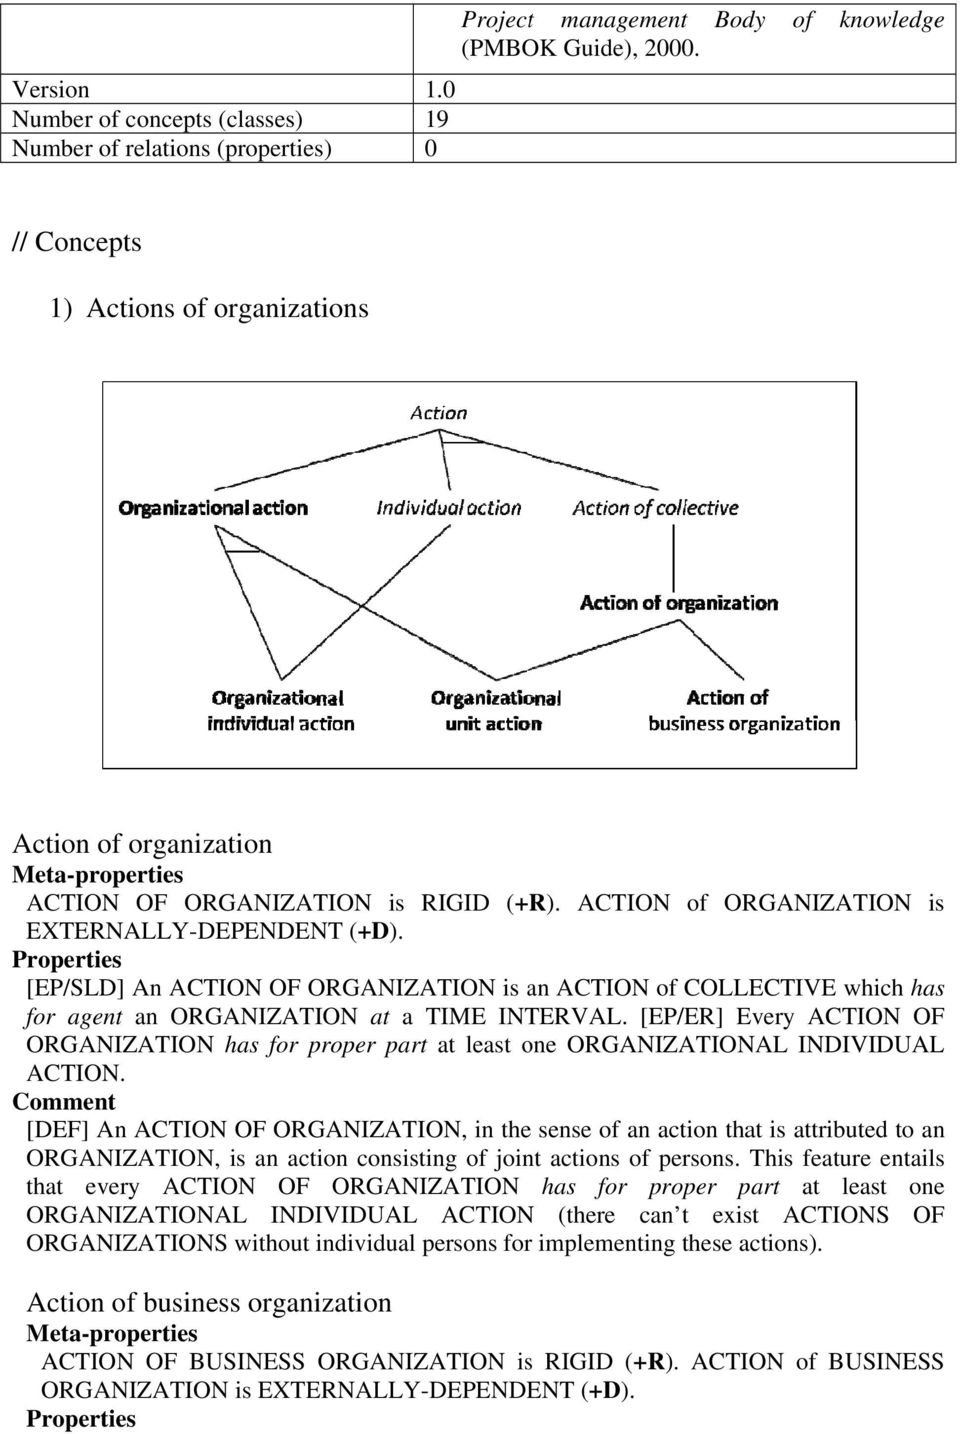 ACTION of ORGANIZATION is EXTERNALLY-DEPENDENT [EP/SLD] An ACTION OF ORGANIZATION is an ACTION of COLLECTIVE which has (+D). for agent an ORGANIZATION at a TIME INTERVAL.